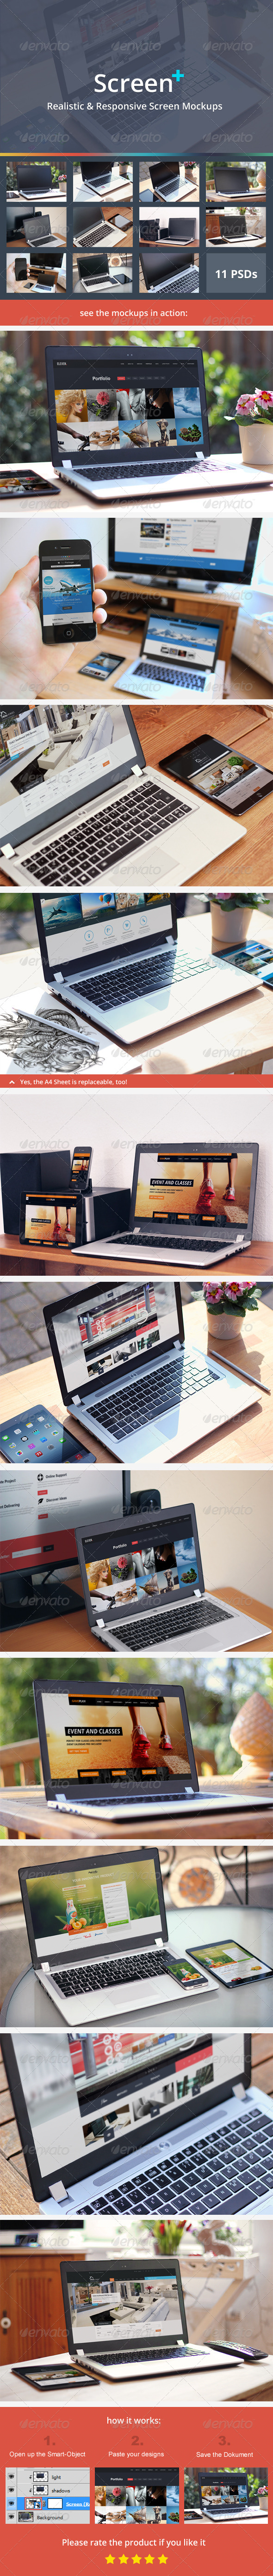 GraphicRiver ScreenPlus Realistic & Responsive Screen Mockups 7673872